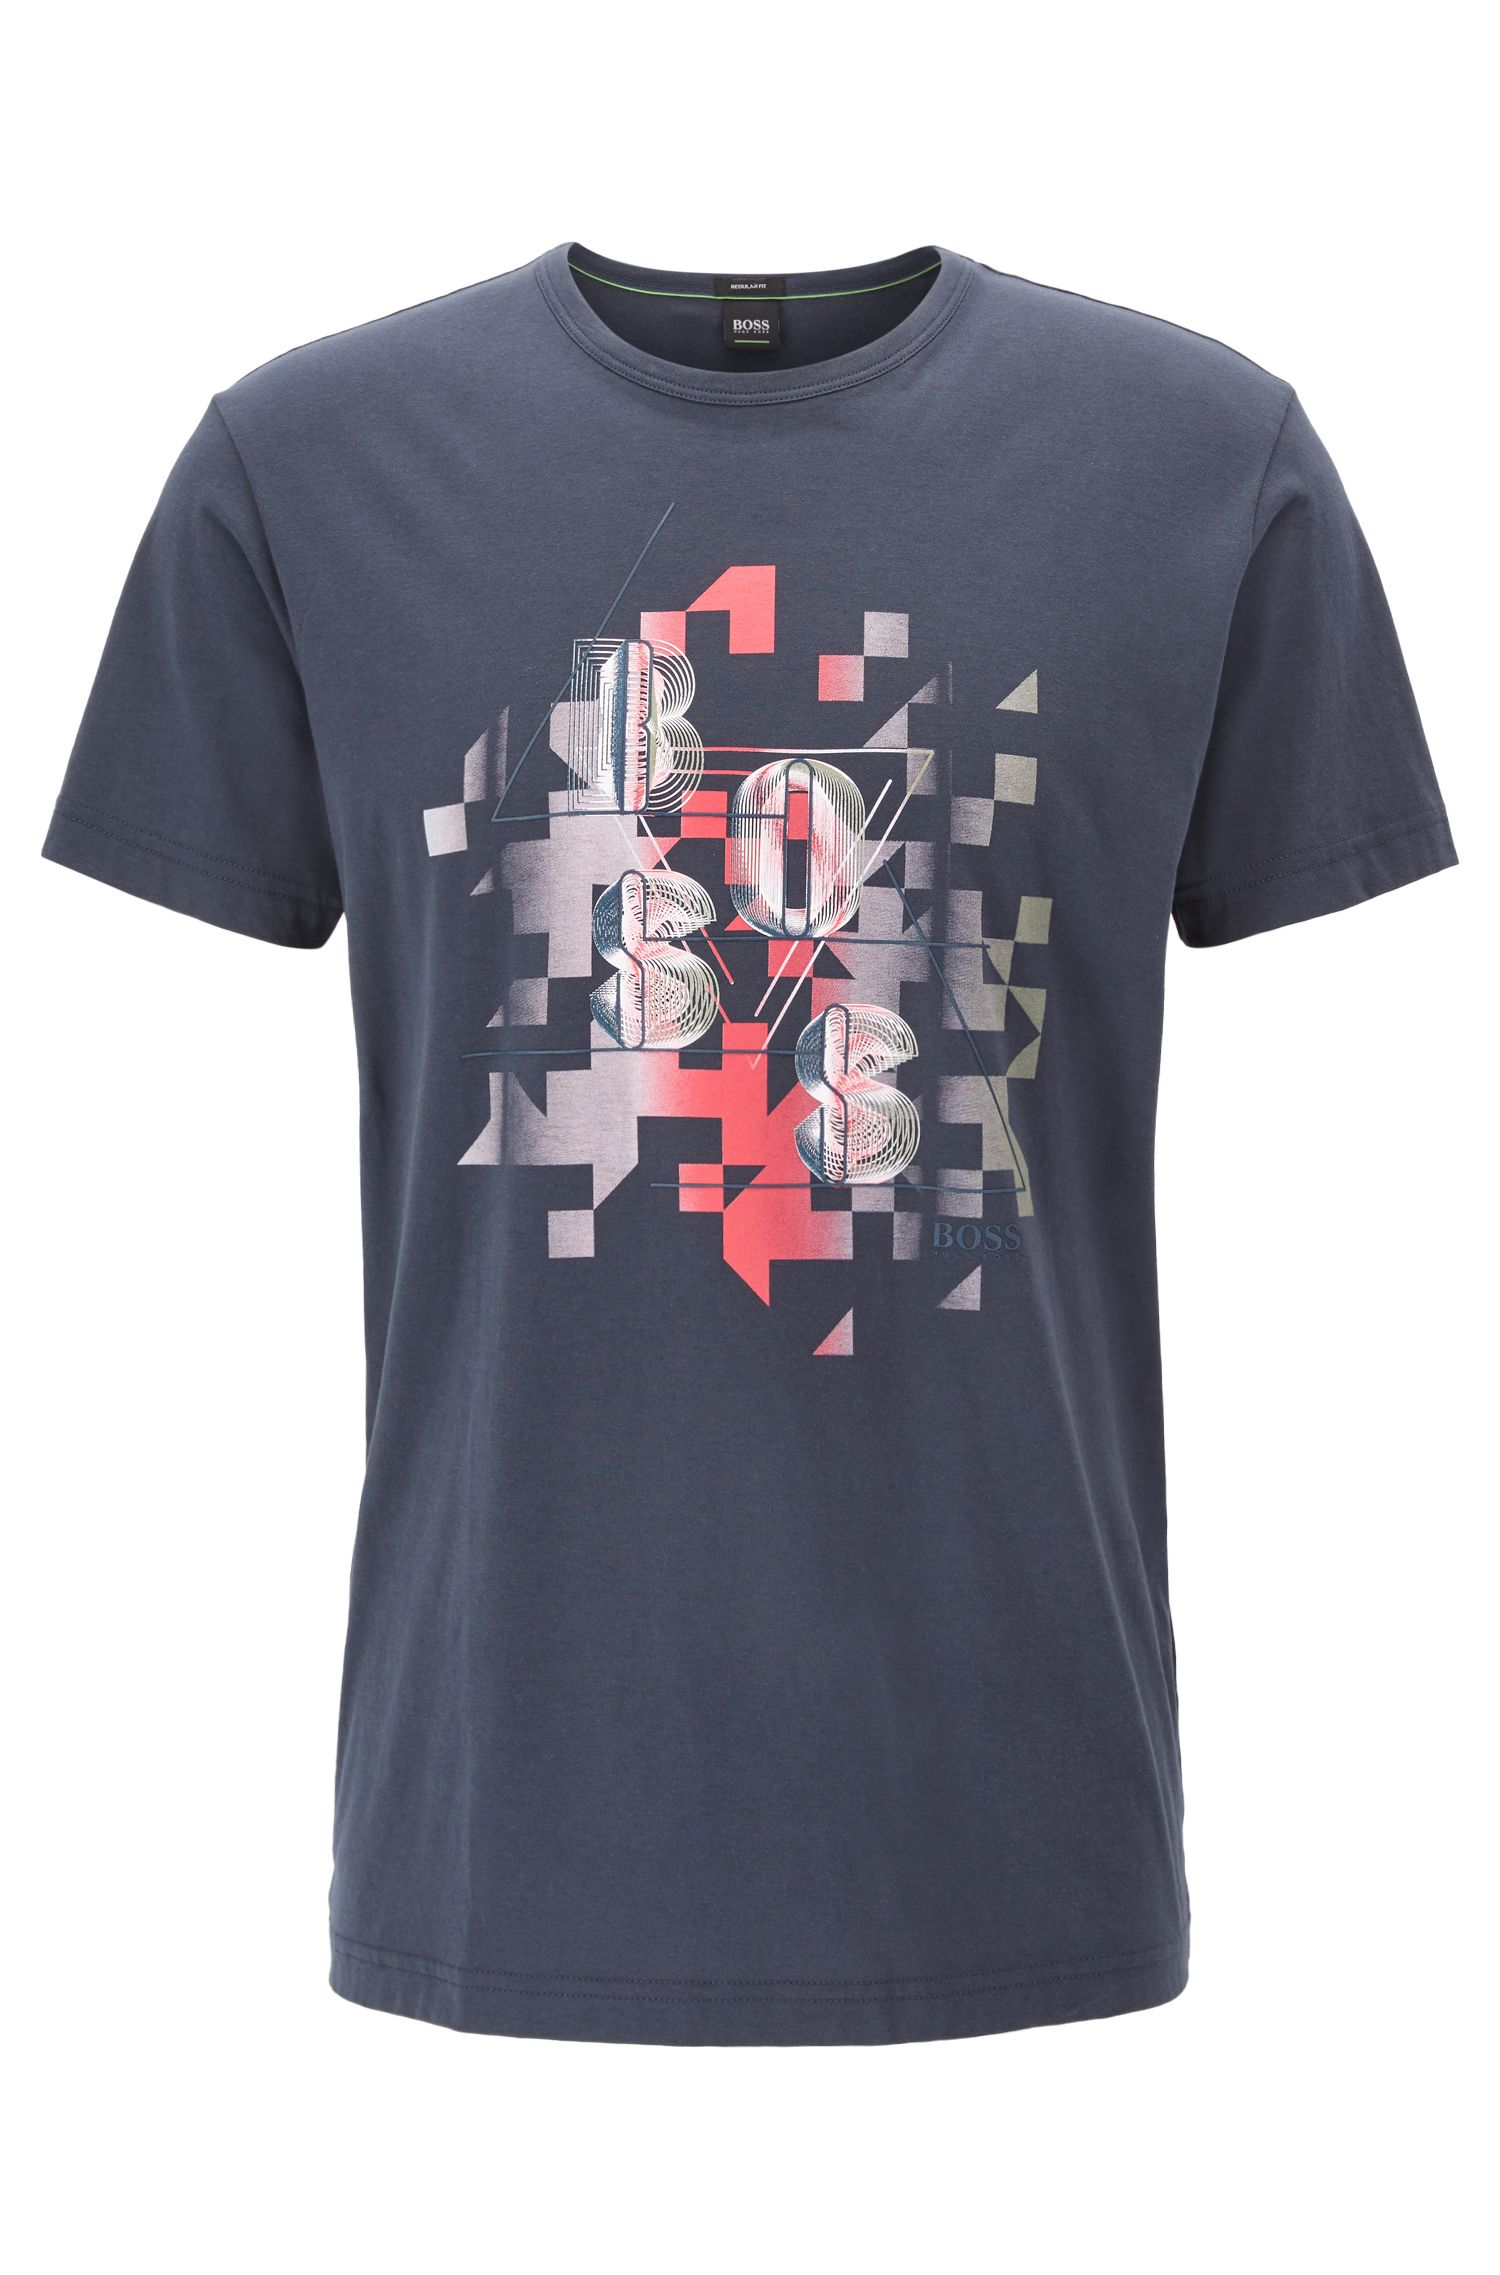 Cotton T-shirt with dynamic artwork